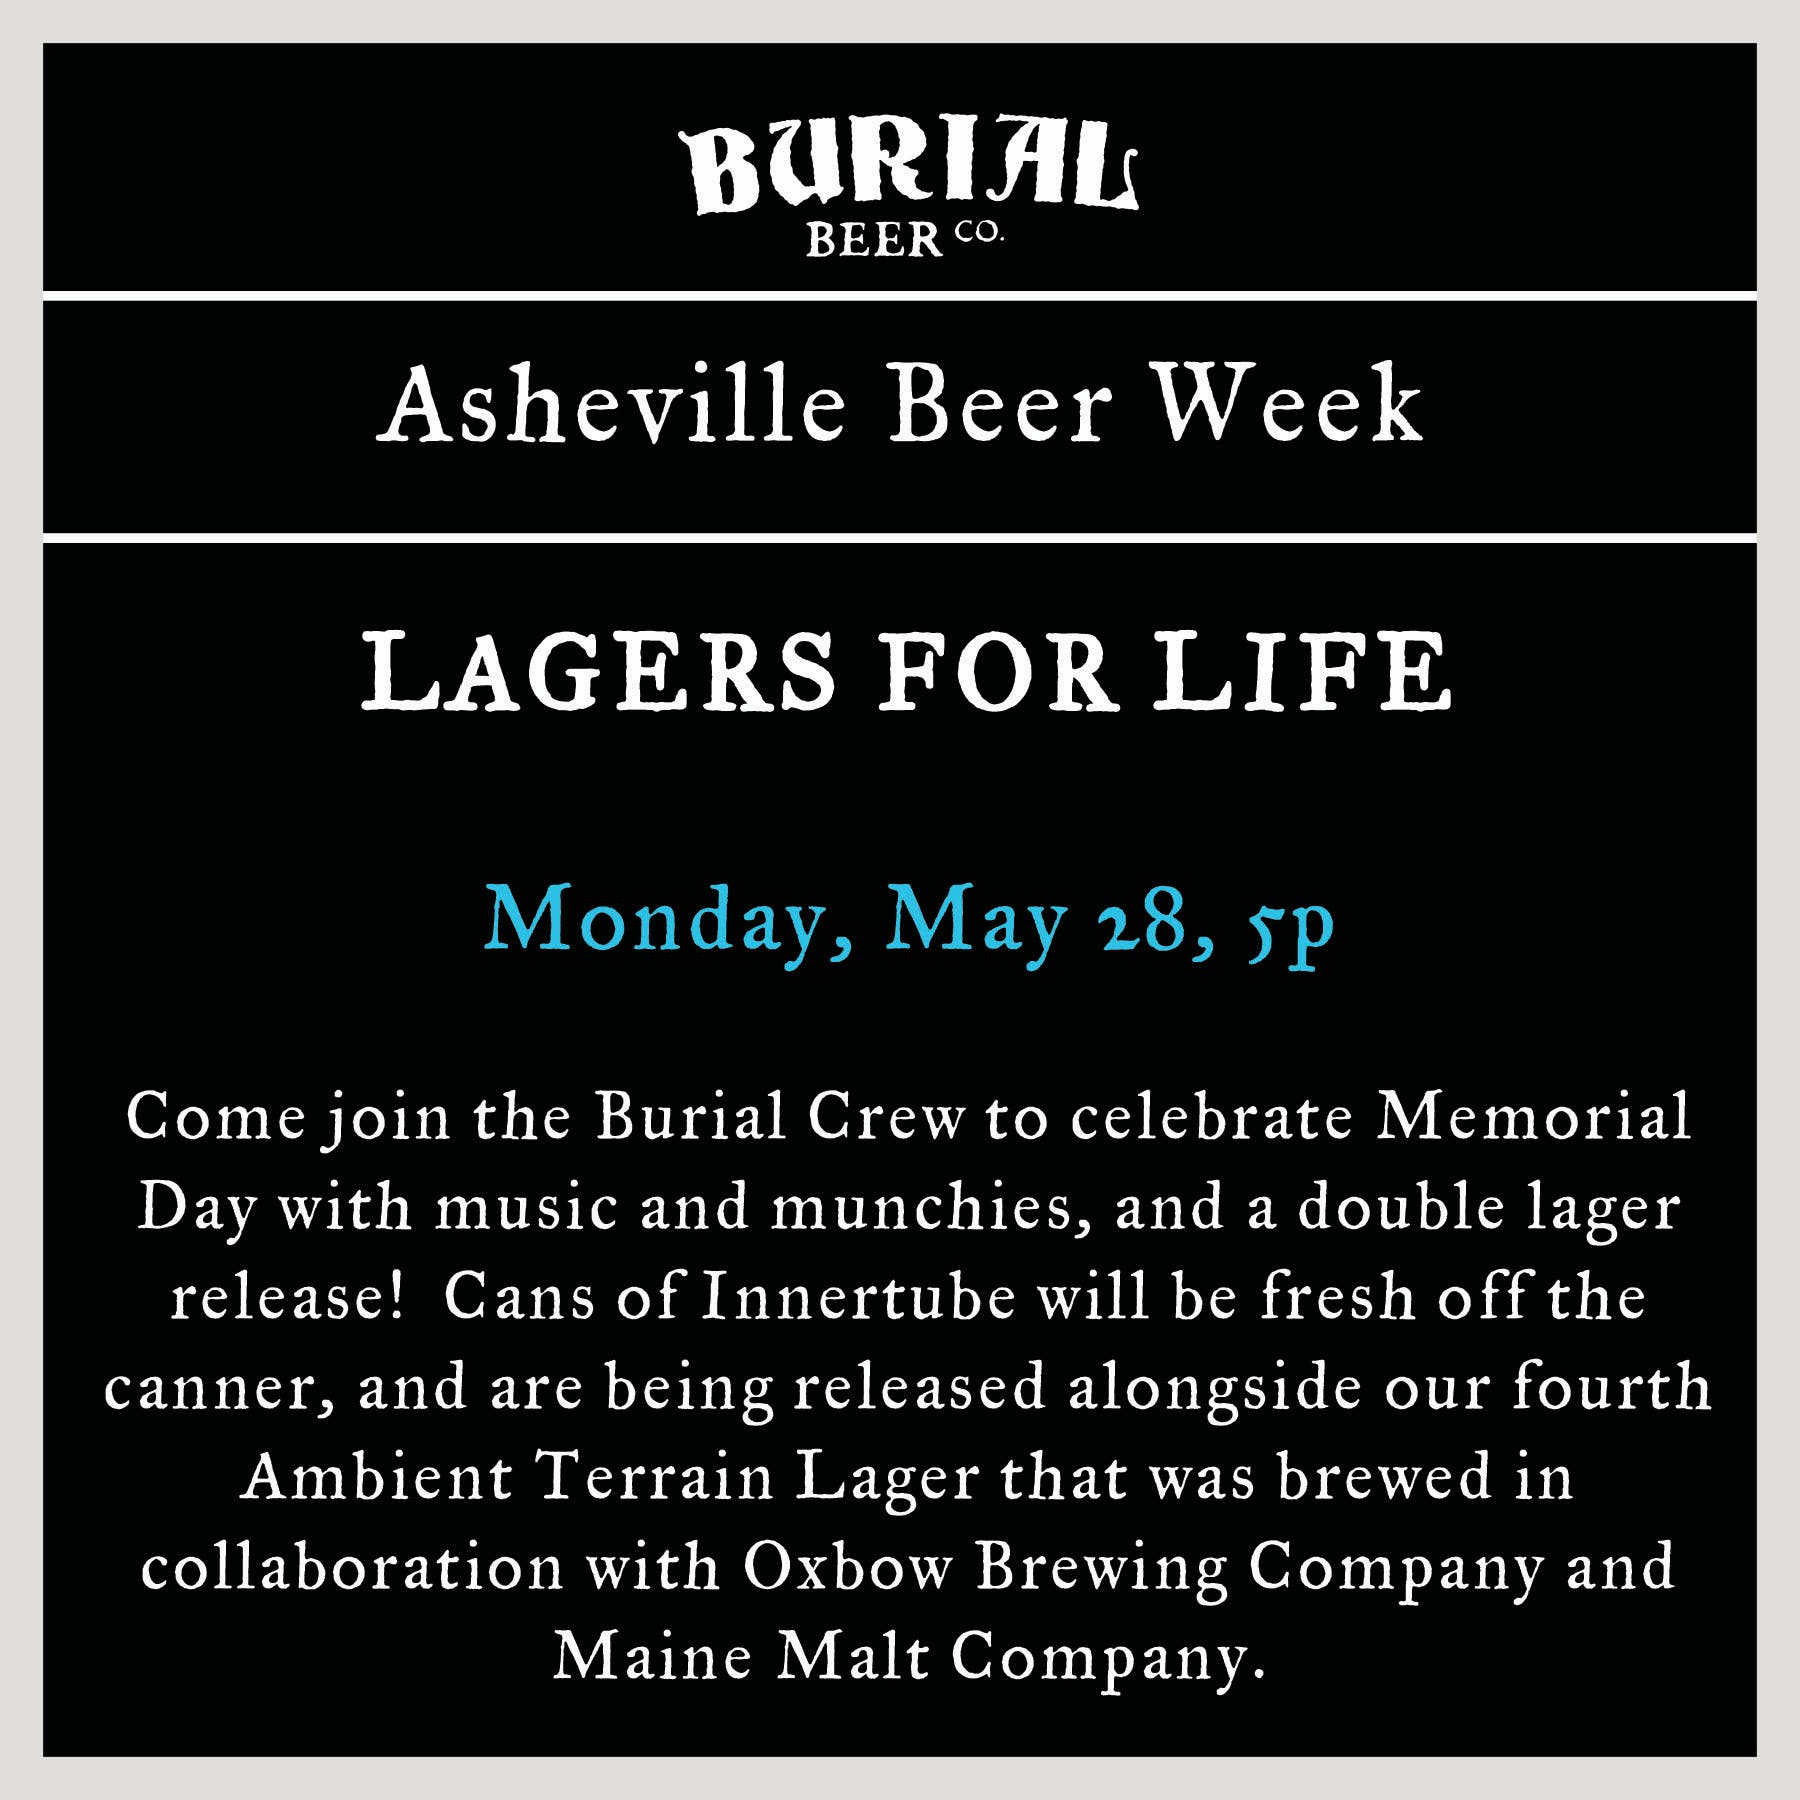 Lagers for Life @ Asheville Beer Week